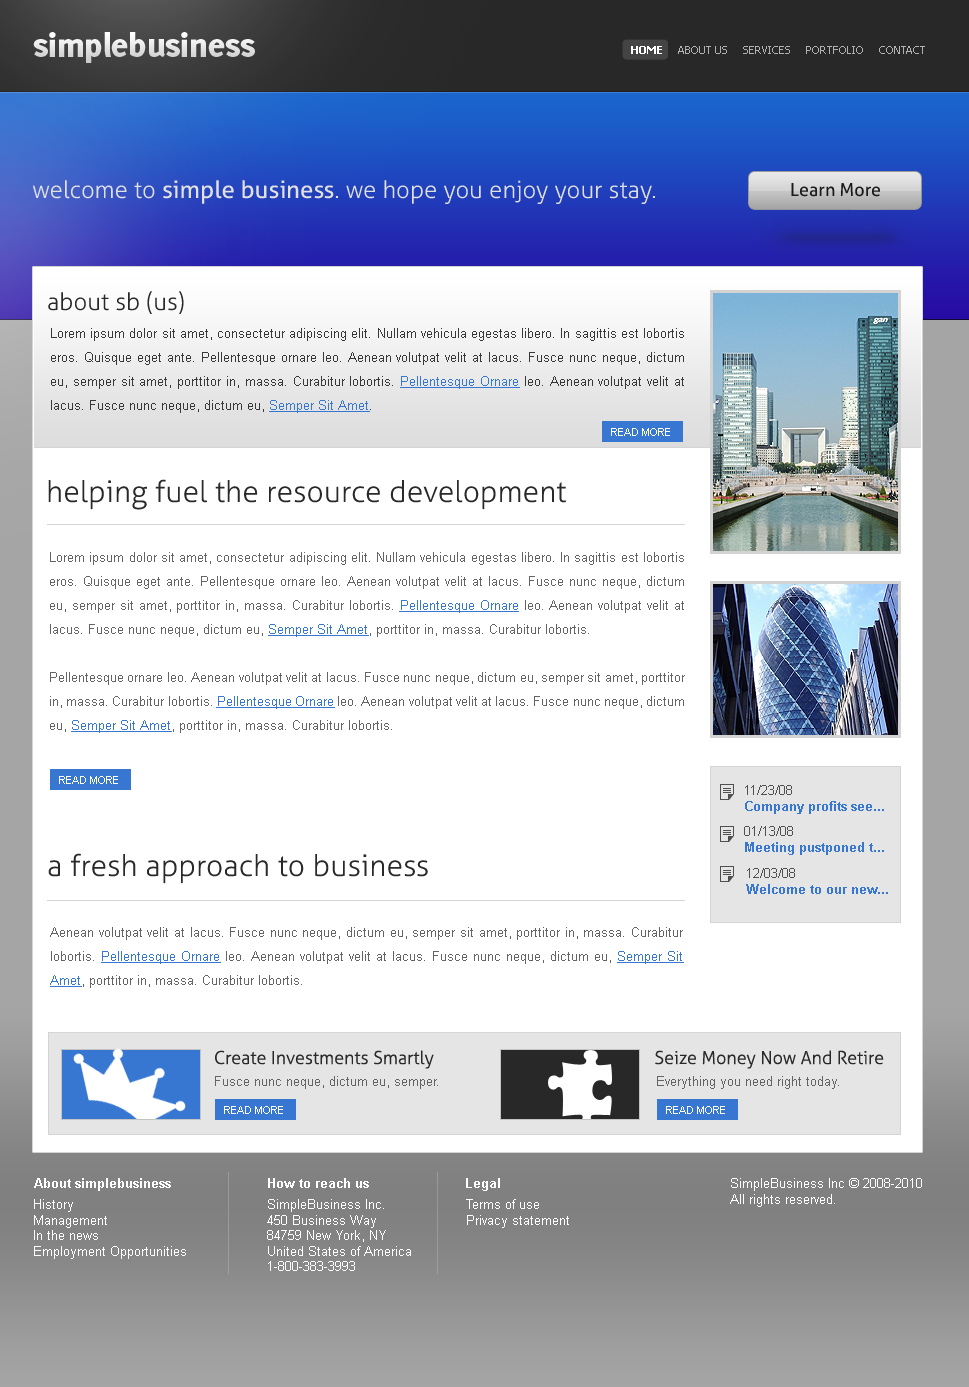 SimpleBusiness Theme - A simple business-oriented theme which can be easily modified to fit just about any website, a very open and modern look.